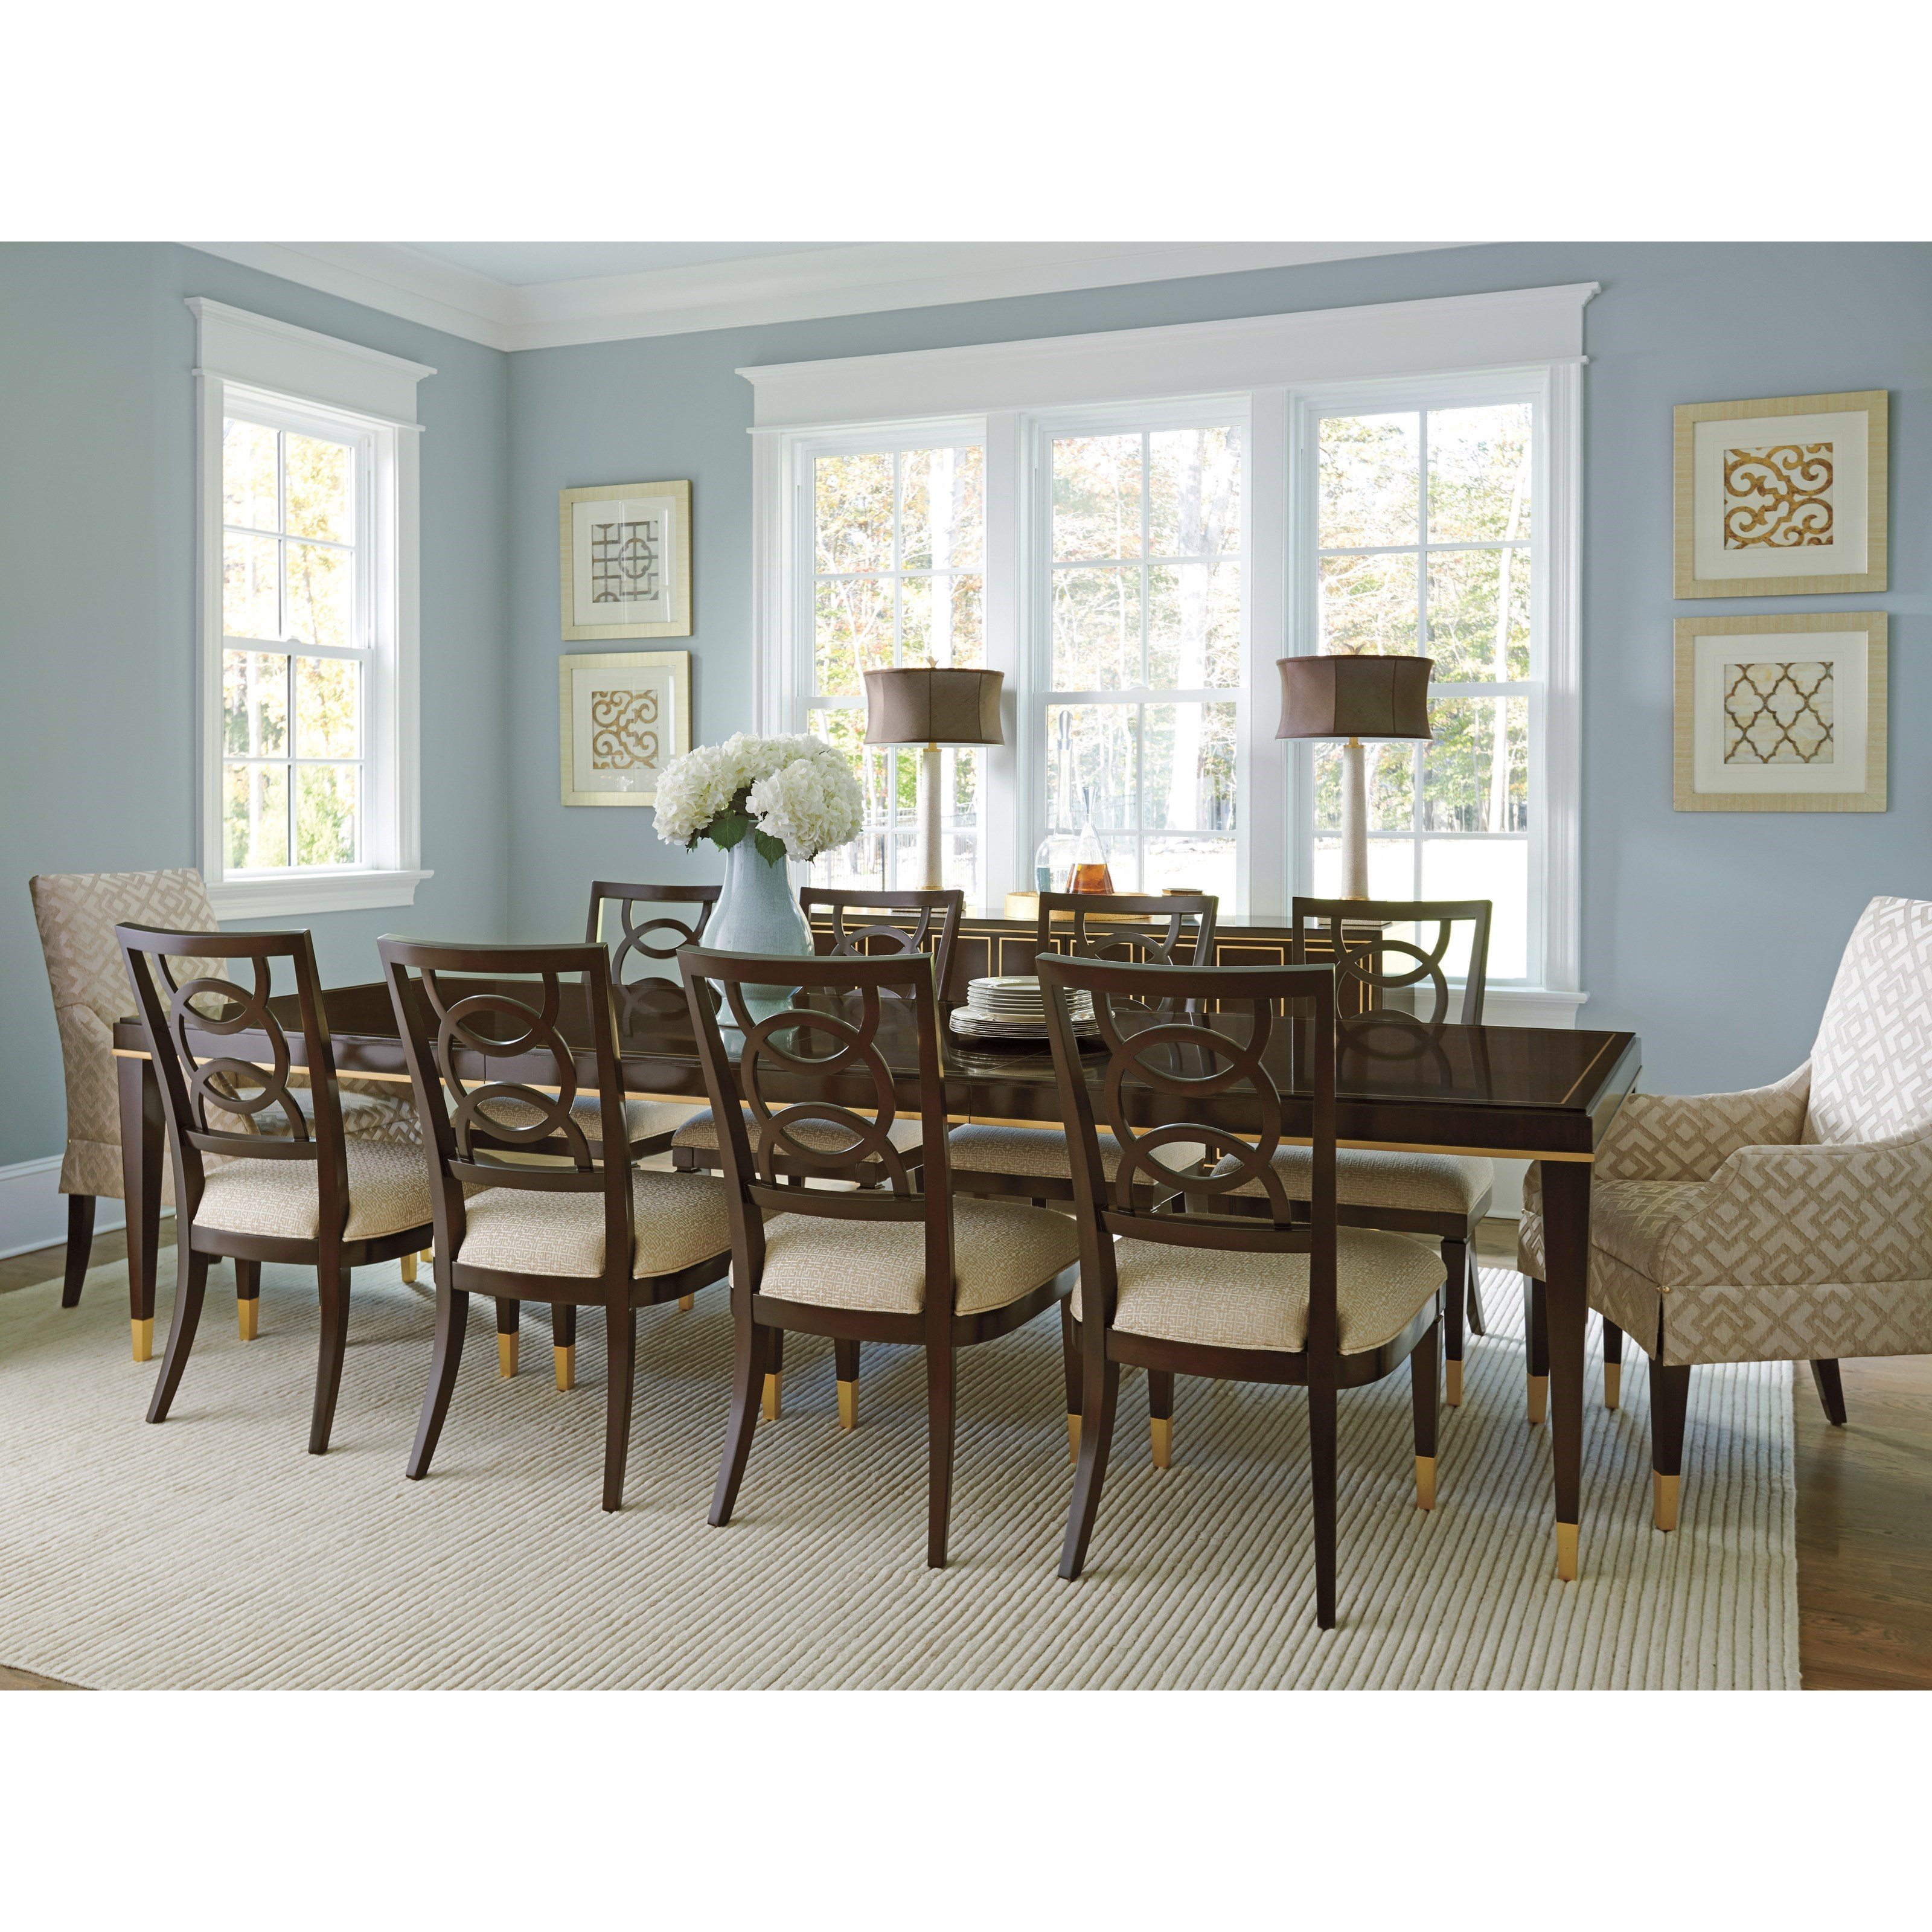 Carlyle 11 Pc Dining Set by Lexington at Baer's Furniture